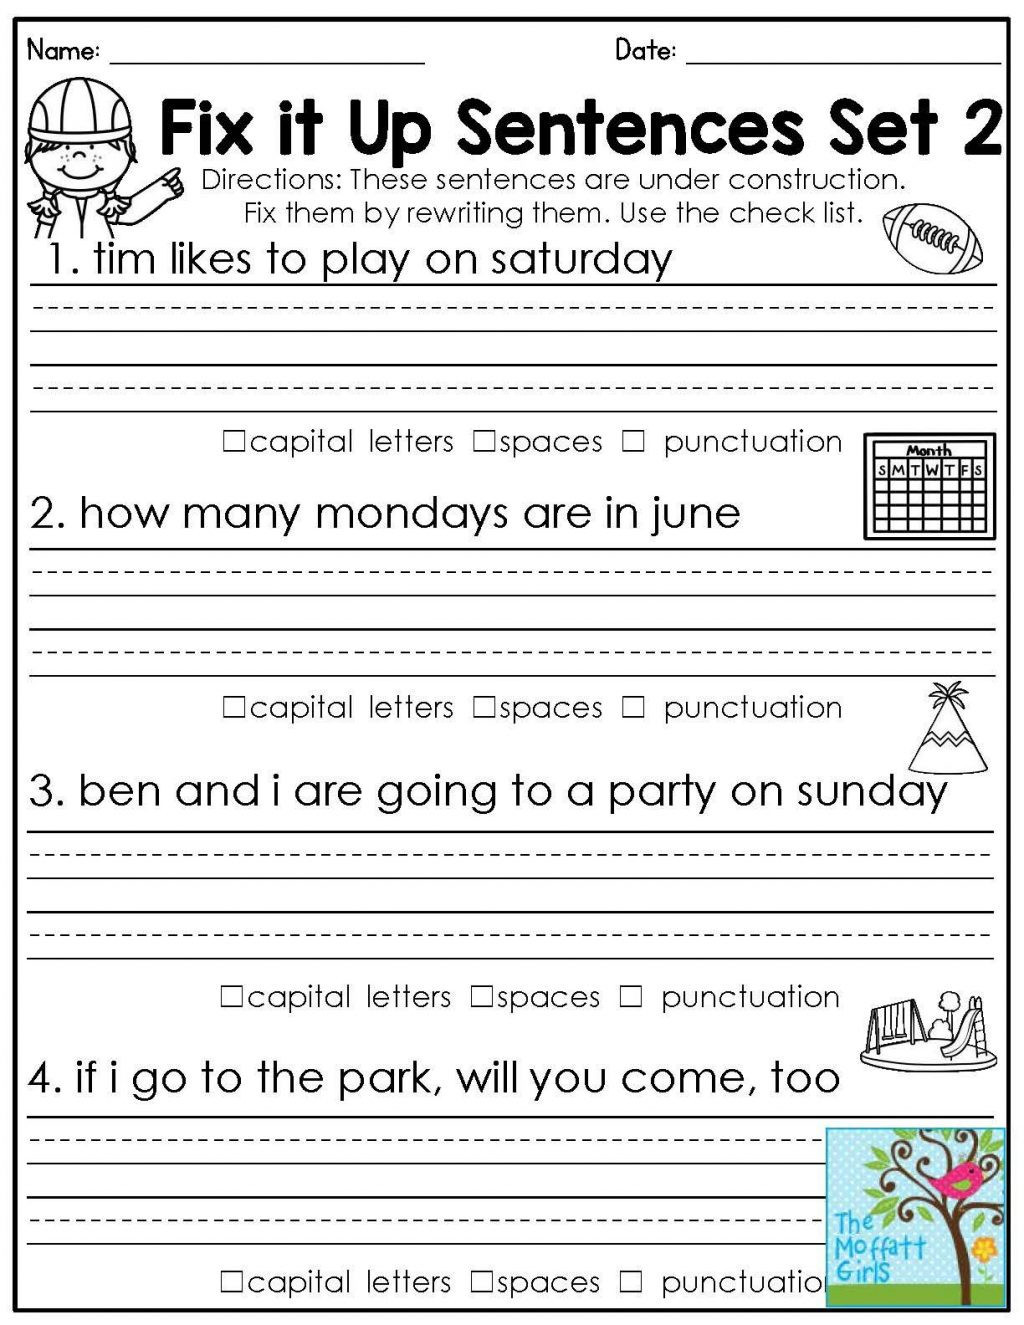 Third Grade Grammar Worksheets 4 Free Grammar Worksheets Third Grade 3 Capitalization